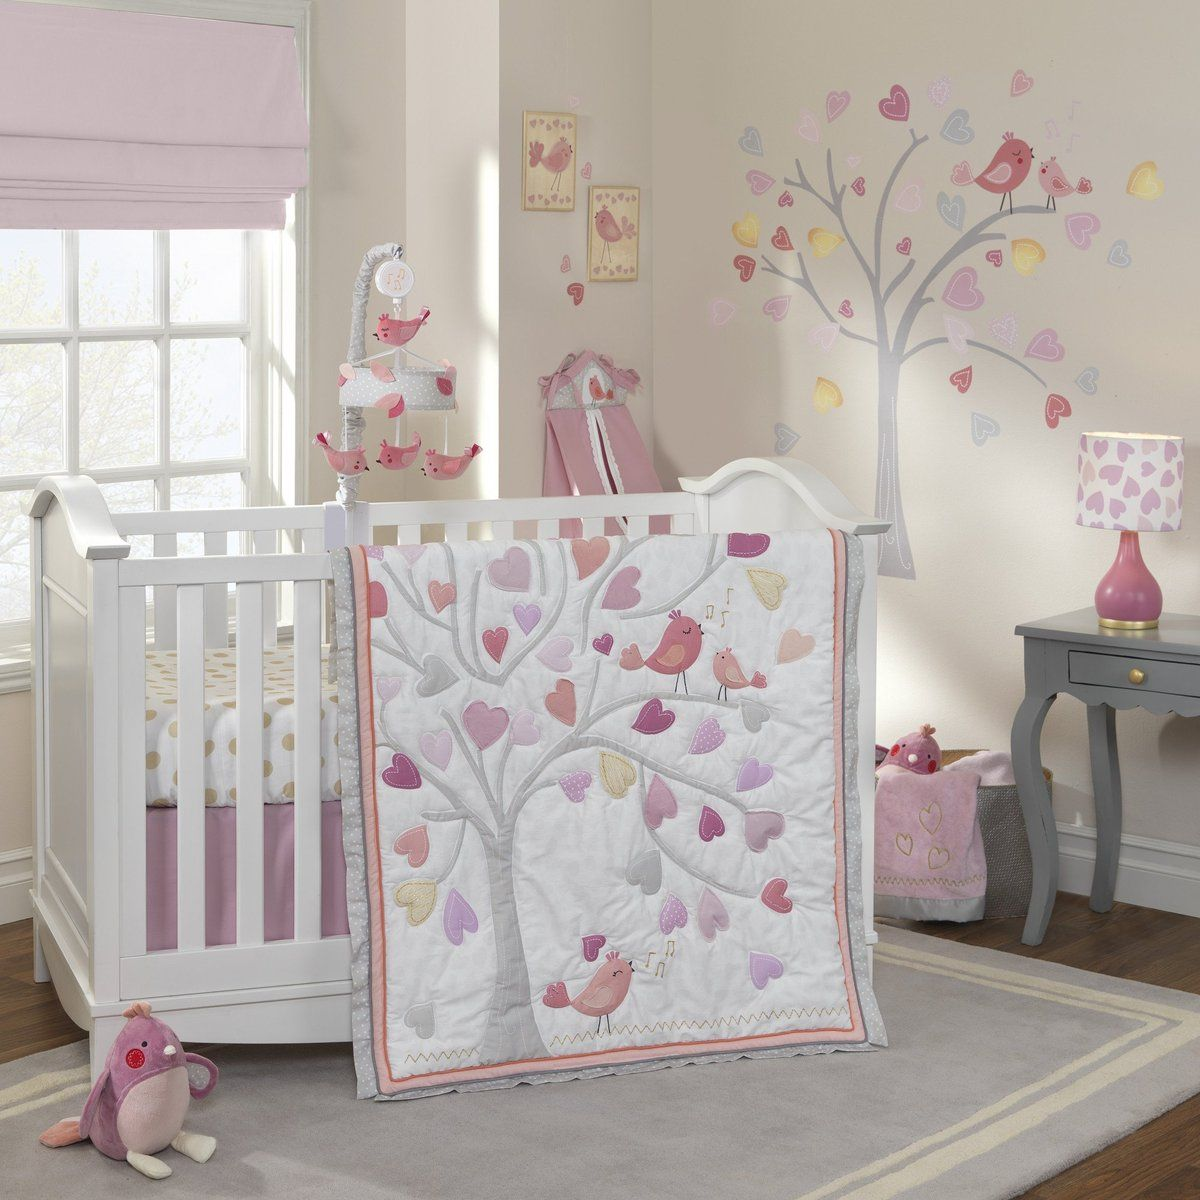 4 Piece Crib Bedding Set Includes A Quilt Fitted Sheet Dust